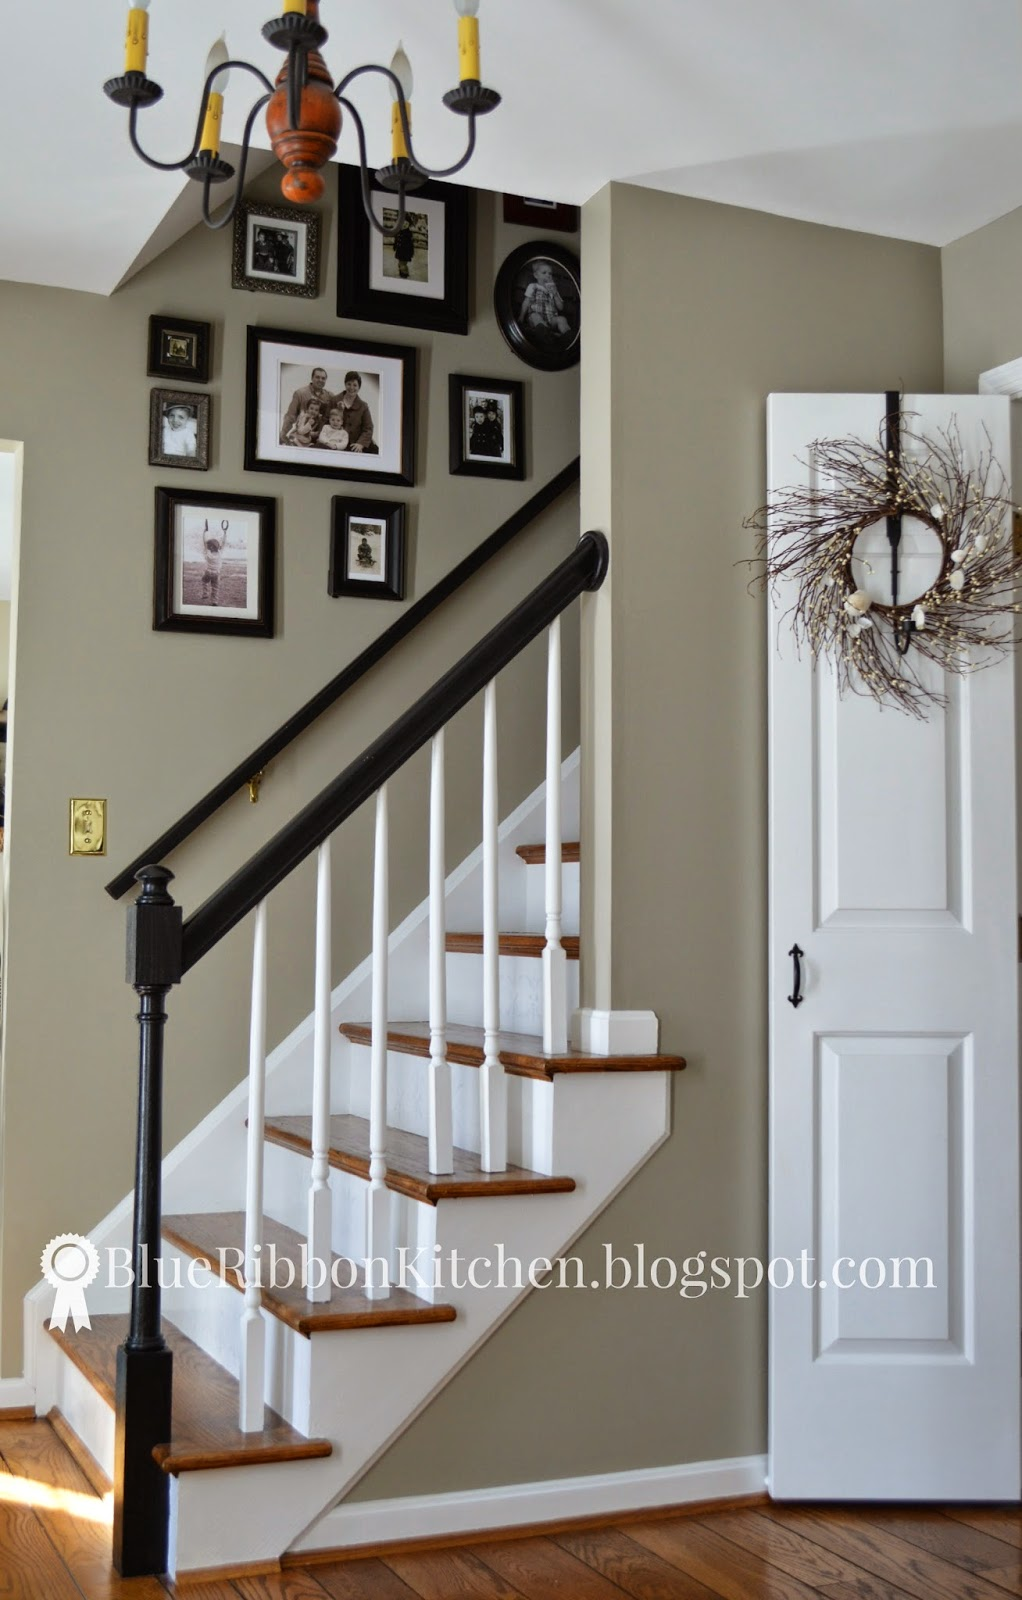 Foyer Ideas Paint Color : Blue ribbon kitchen shades of gray paint